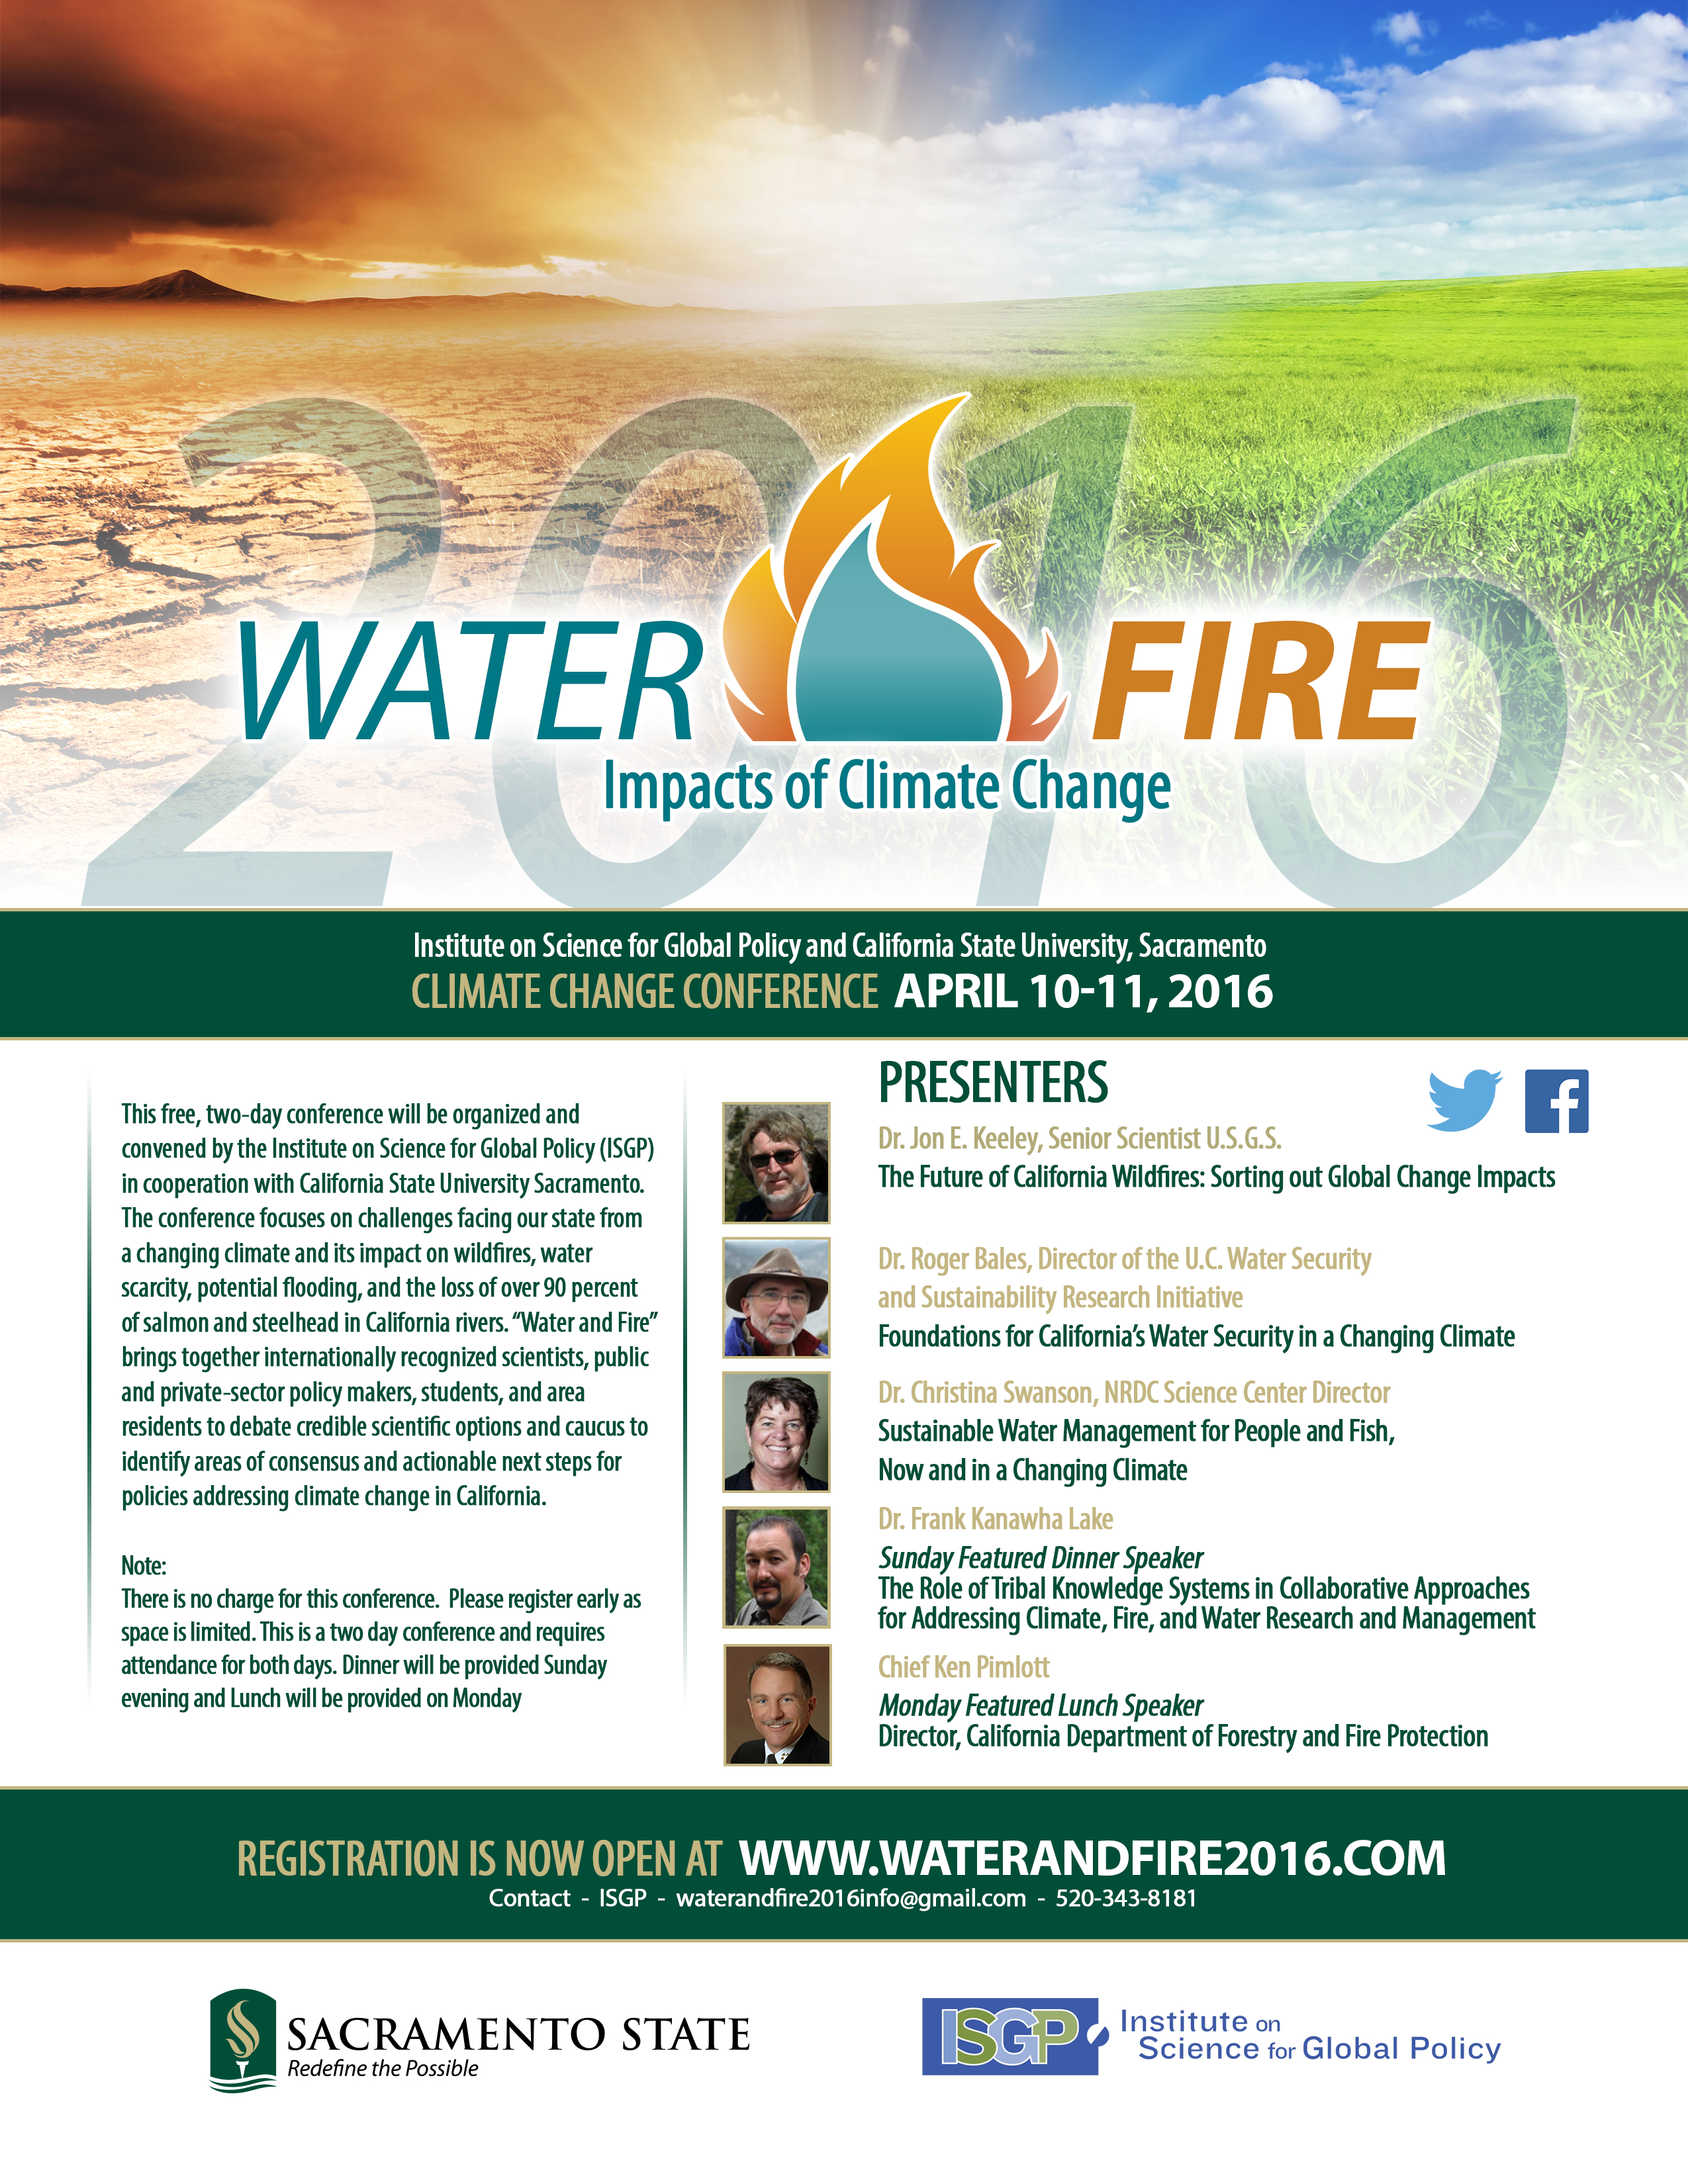 Water and Fire Conference 2016